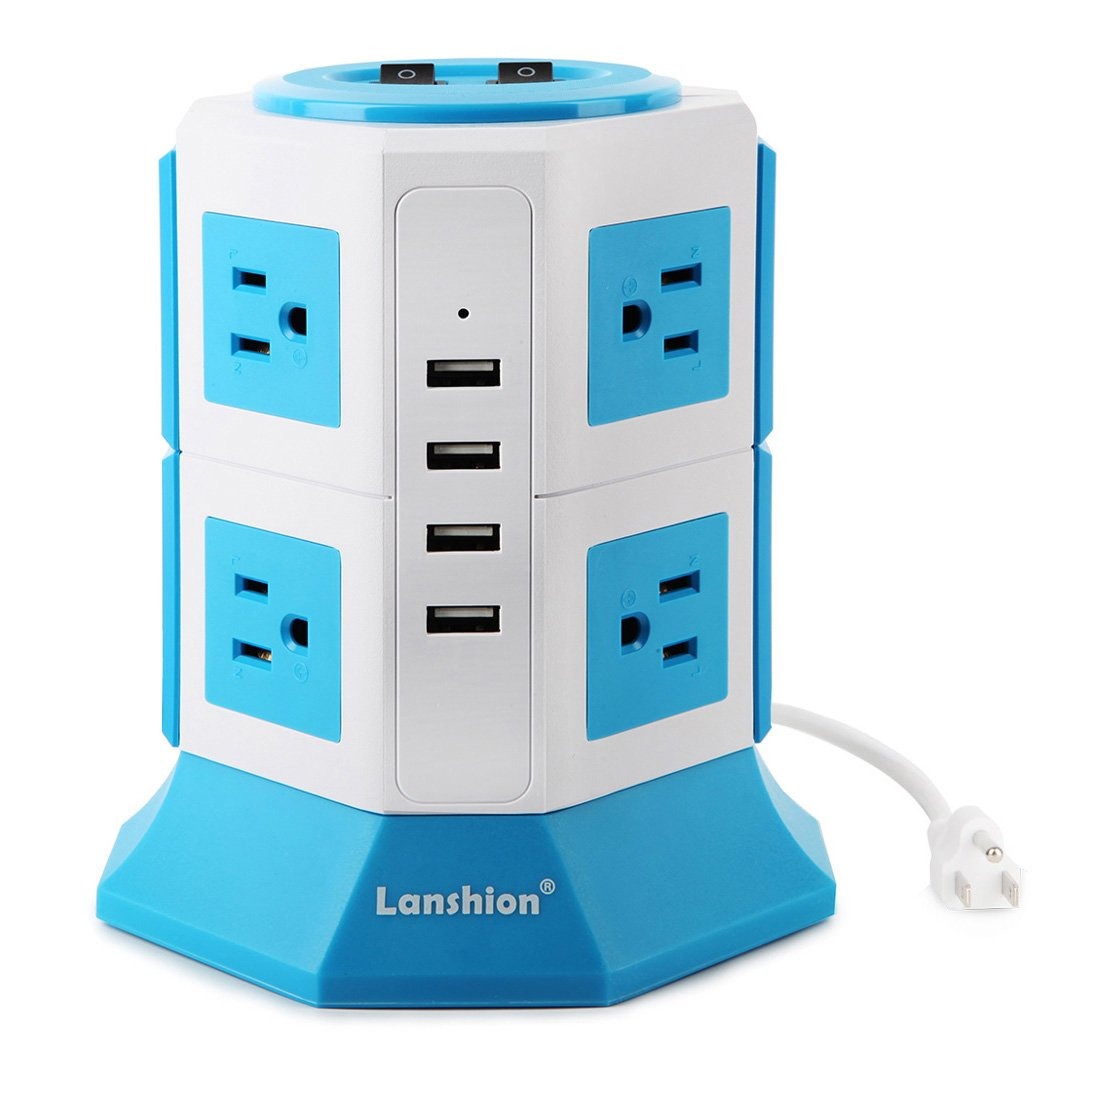 Lanshion 8 outlet surge protector power strip with 4 usb charging ports 1875w desktop usb charging station with 6 5 feet long power cord 1000 joules